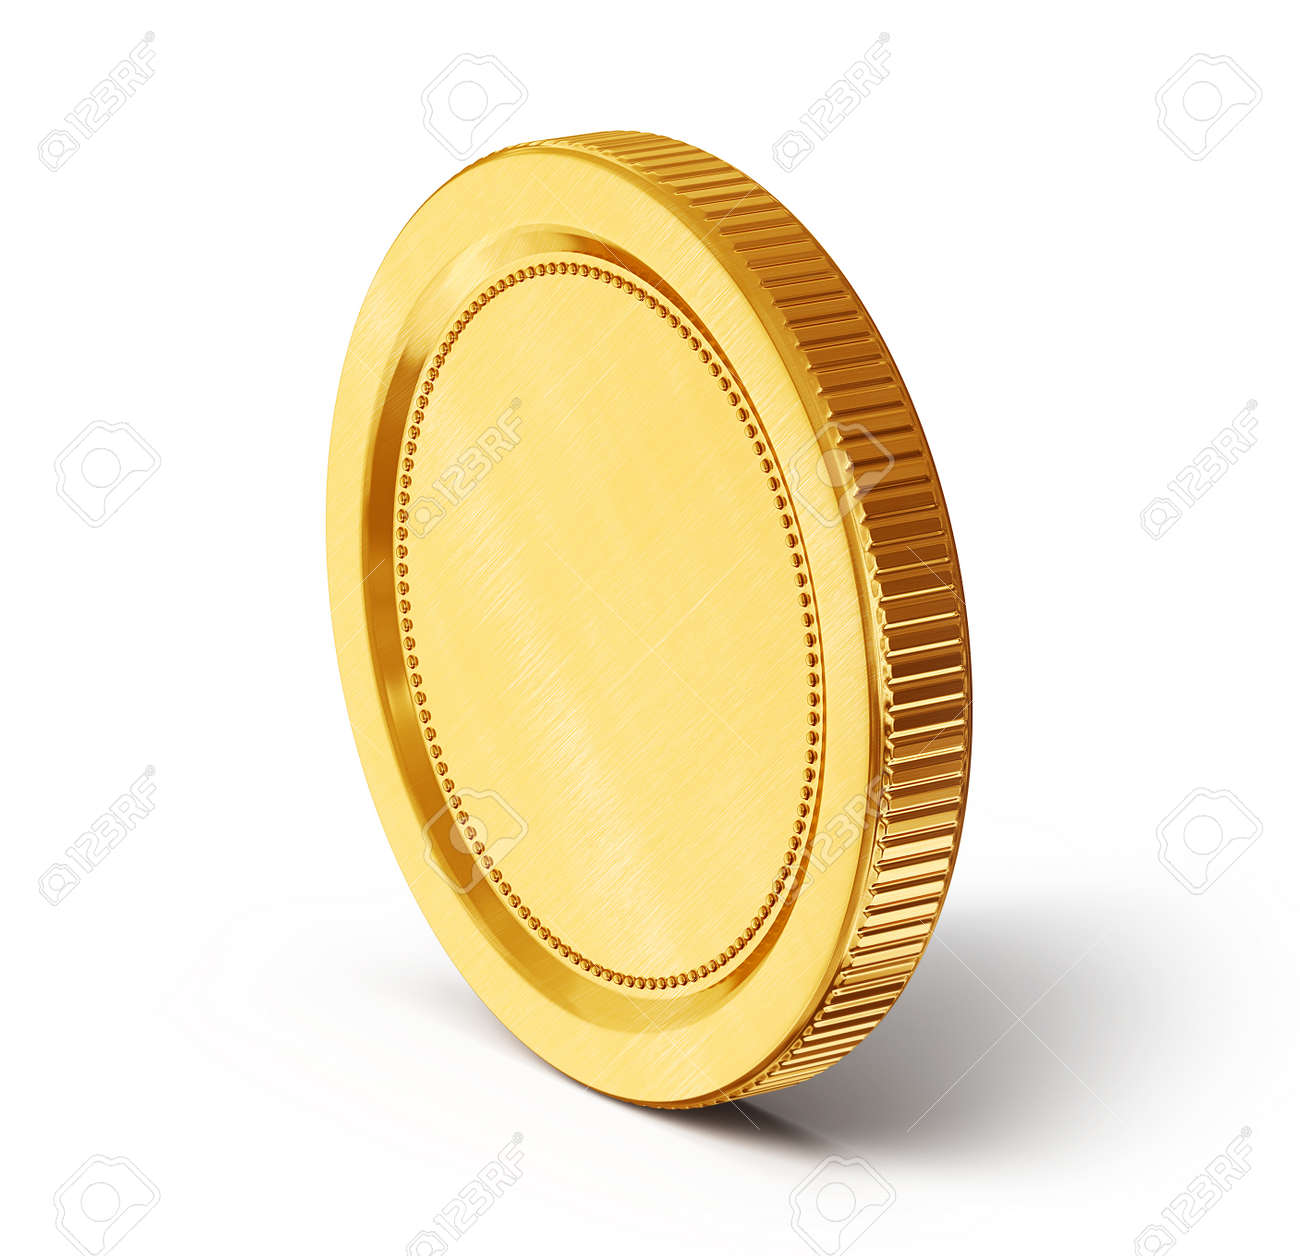 gold coin isolated on a white background - 25742157